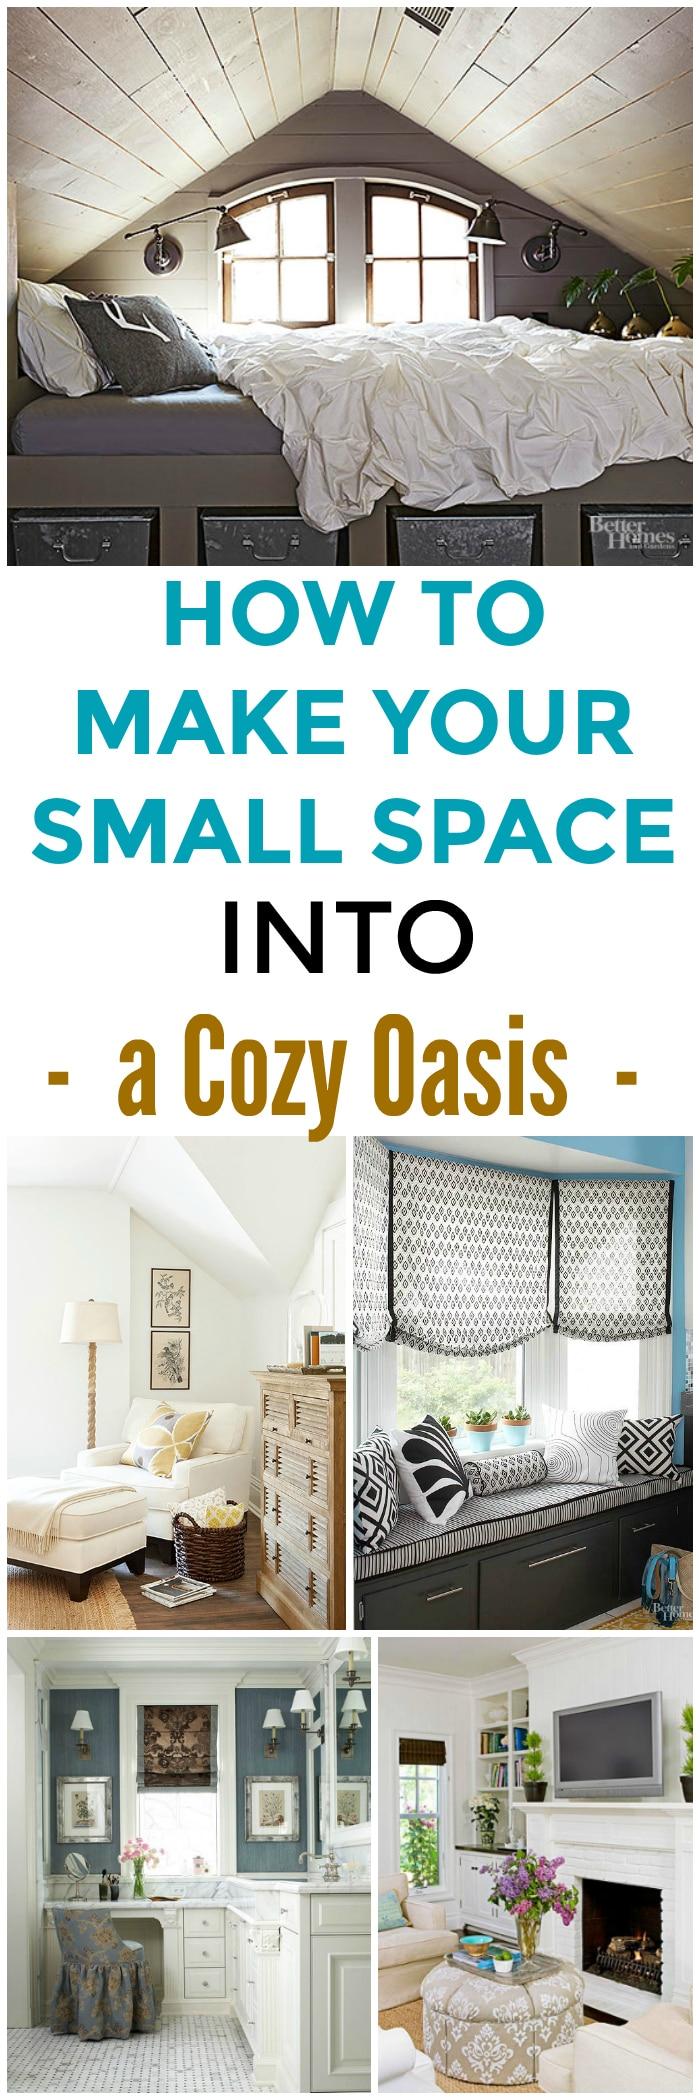 5 cozy small spaces that are warm and homey setting for four